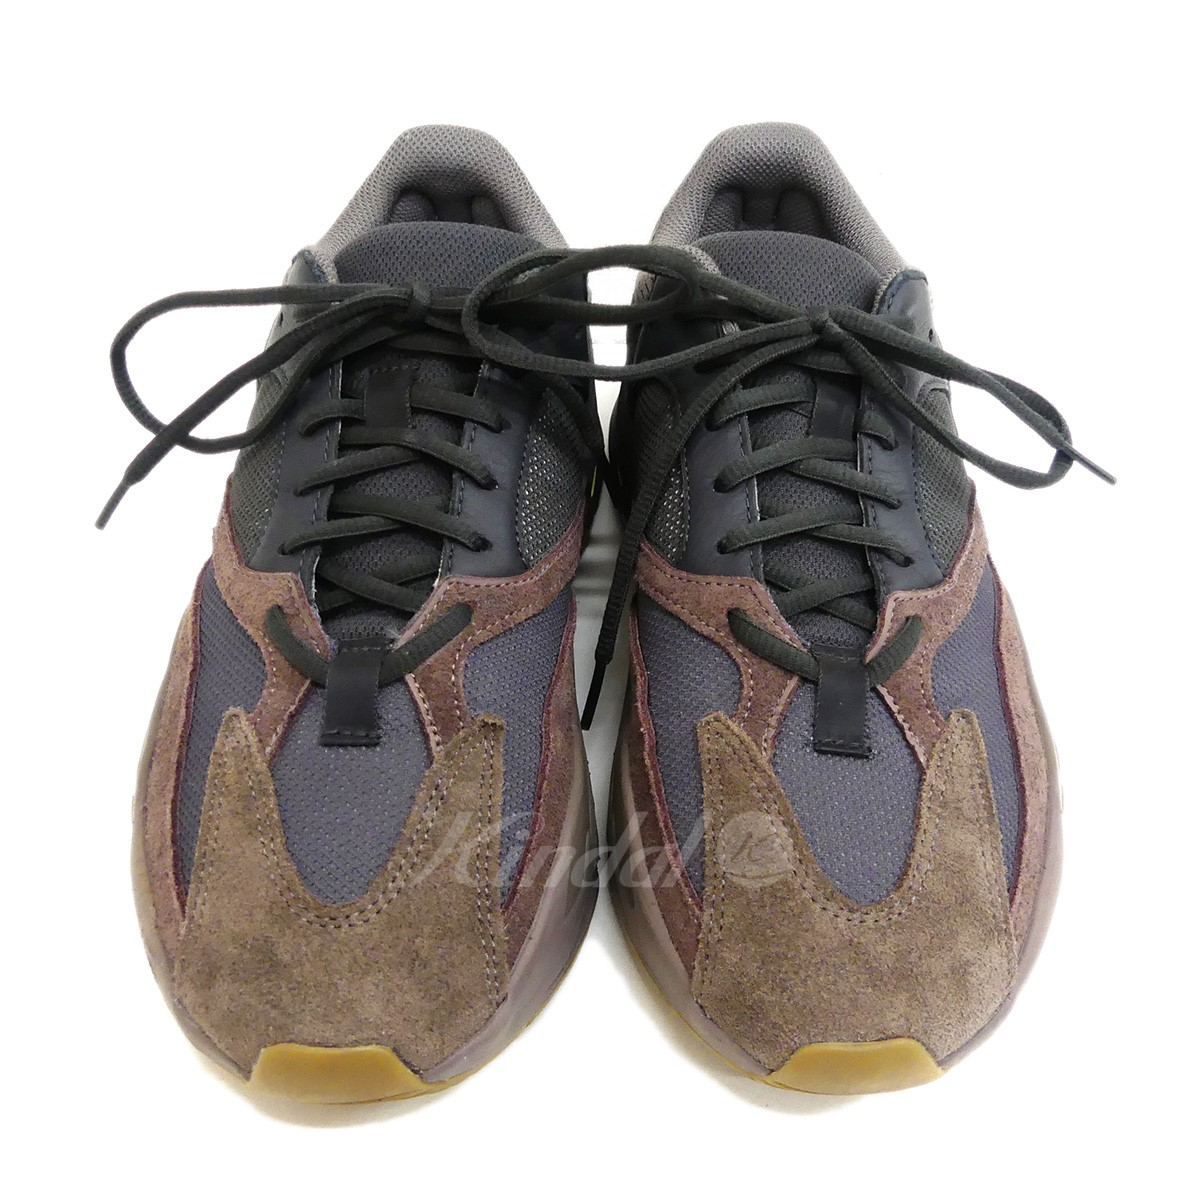 best cheap 6f0b1 47b36 adidas originals by KANYE WEST sneakers YEEZY BOOST 700 EE9614 Mauve Gray  size: 27. 5 (Adidas originals by Kanie waist)